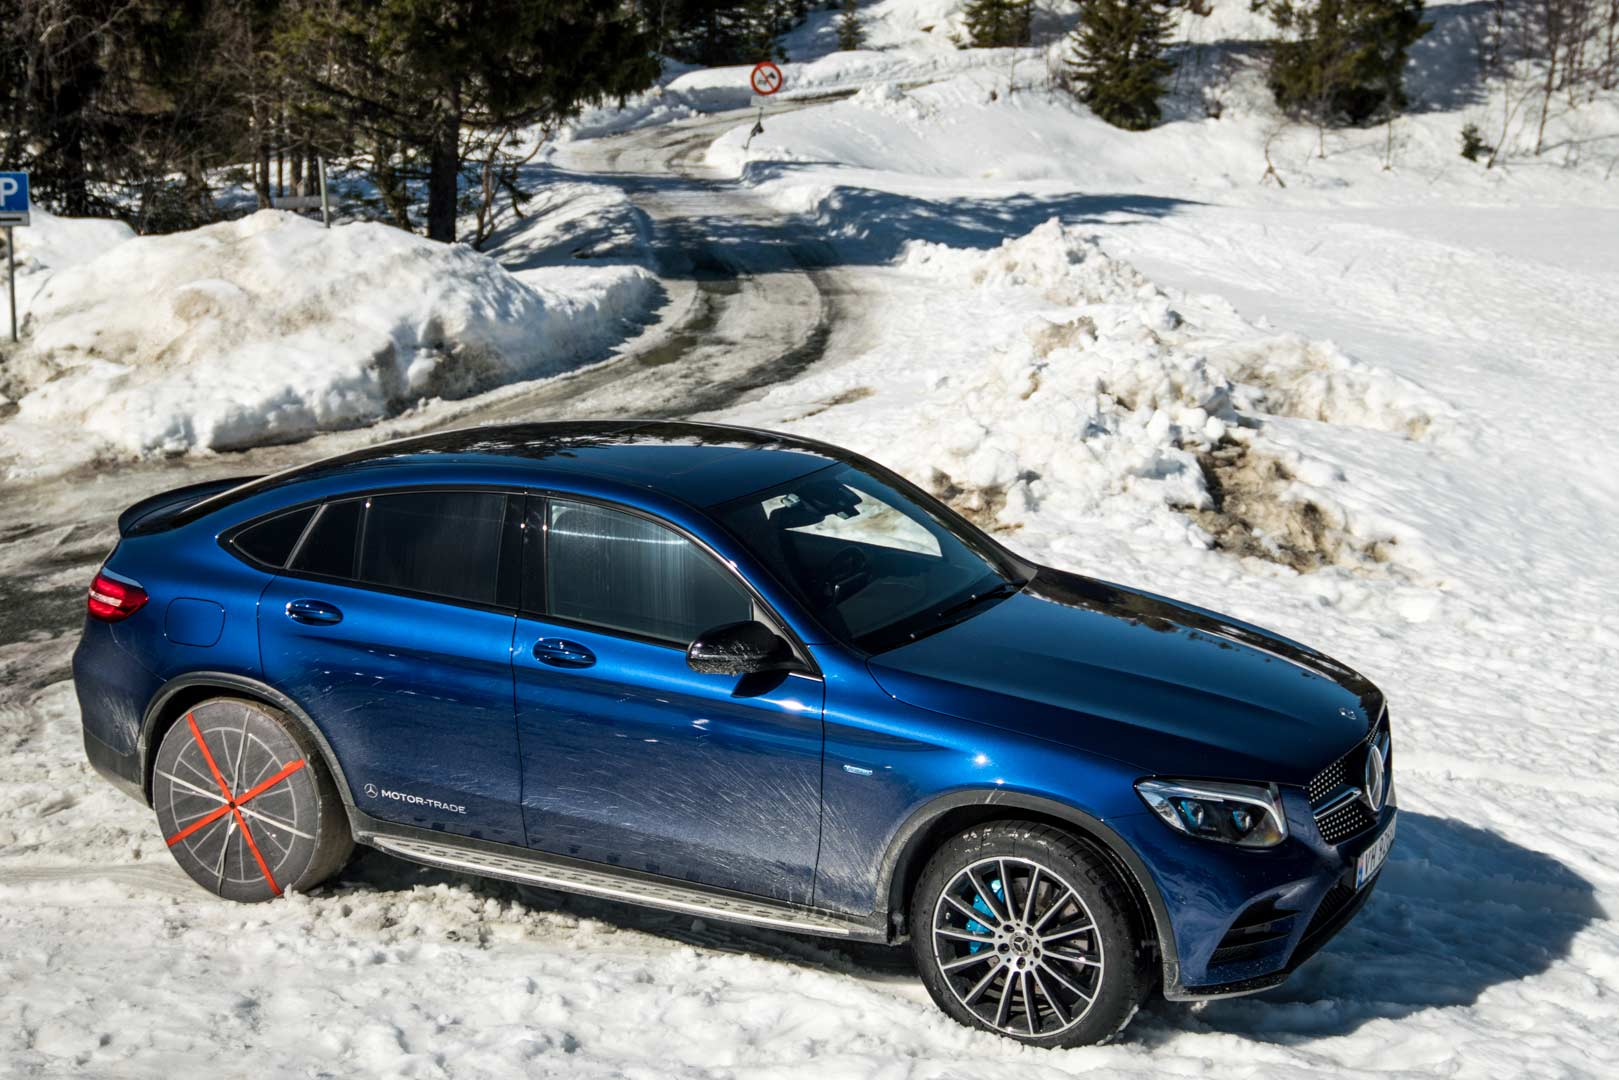 4WD vs. AWD In Snow and Ice? We tell you the truth about traction and winter driving!